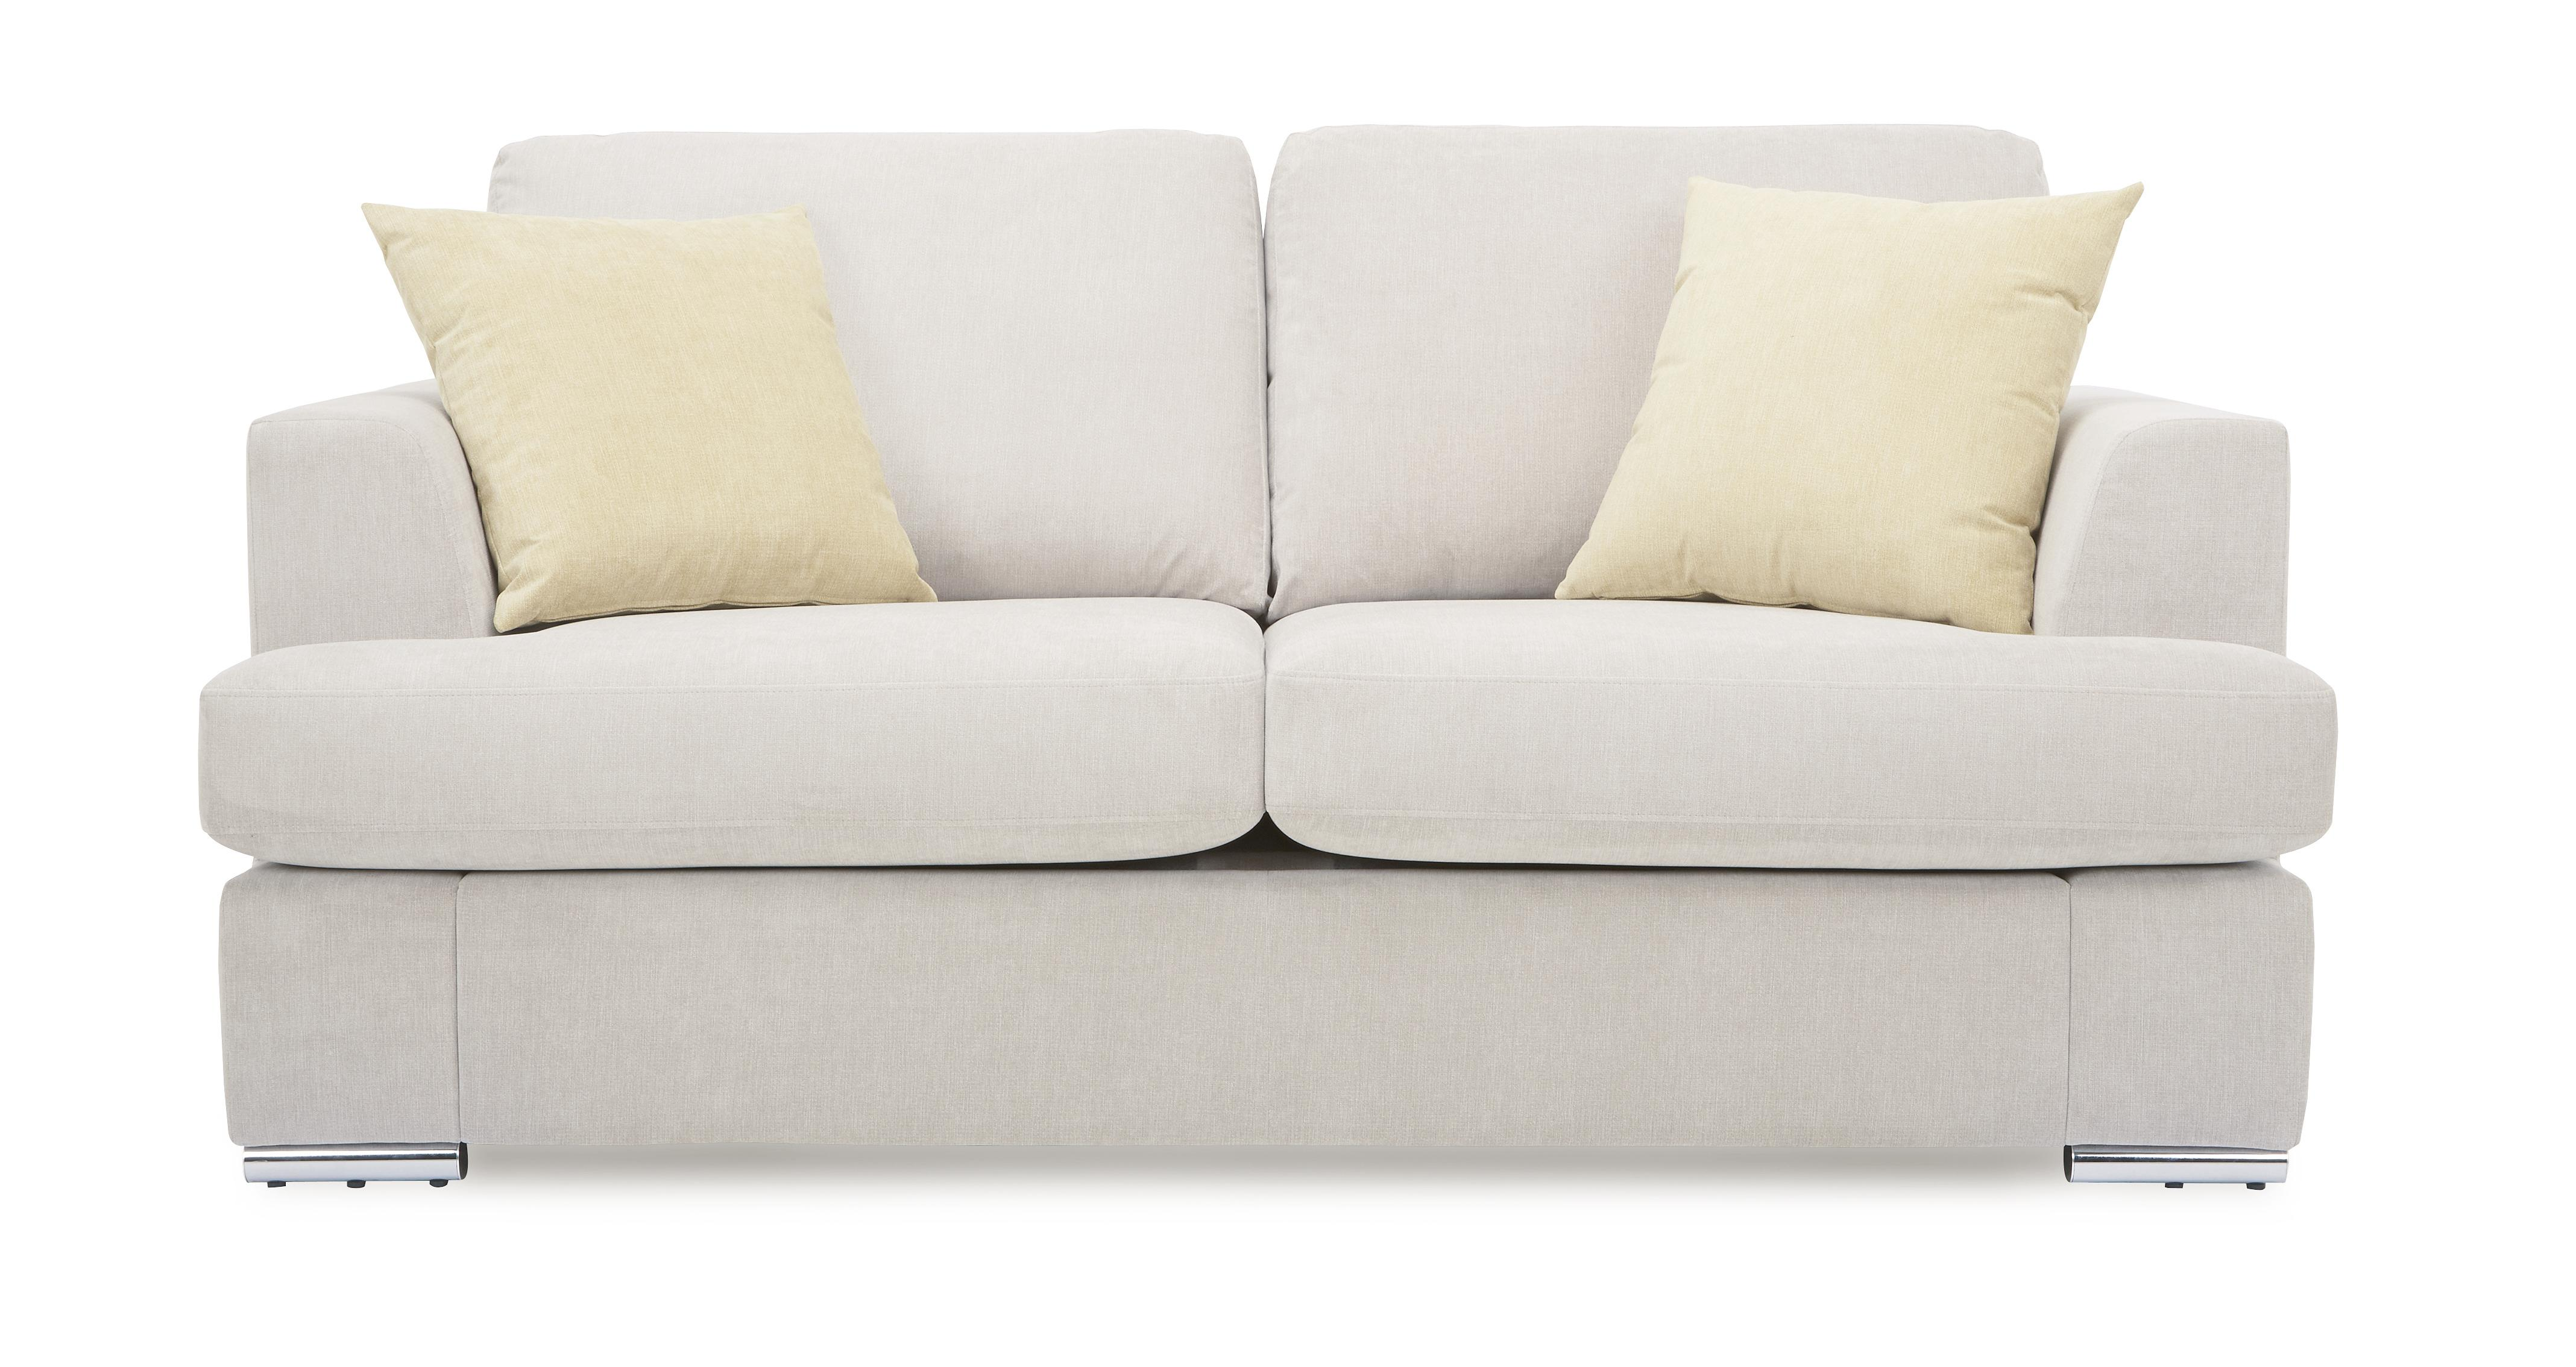 Freya 2 seater sofa dfs for 2 seater sofa